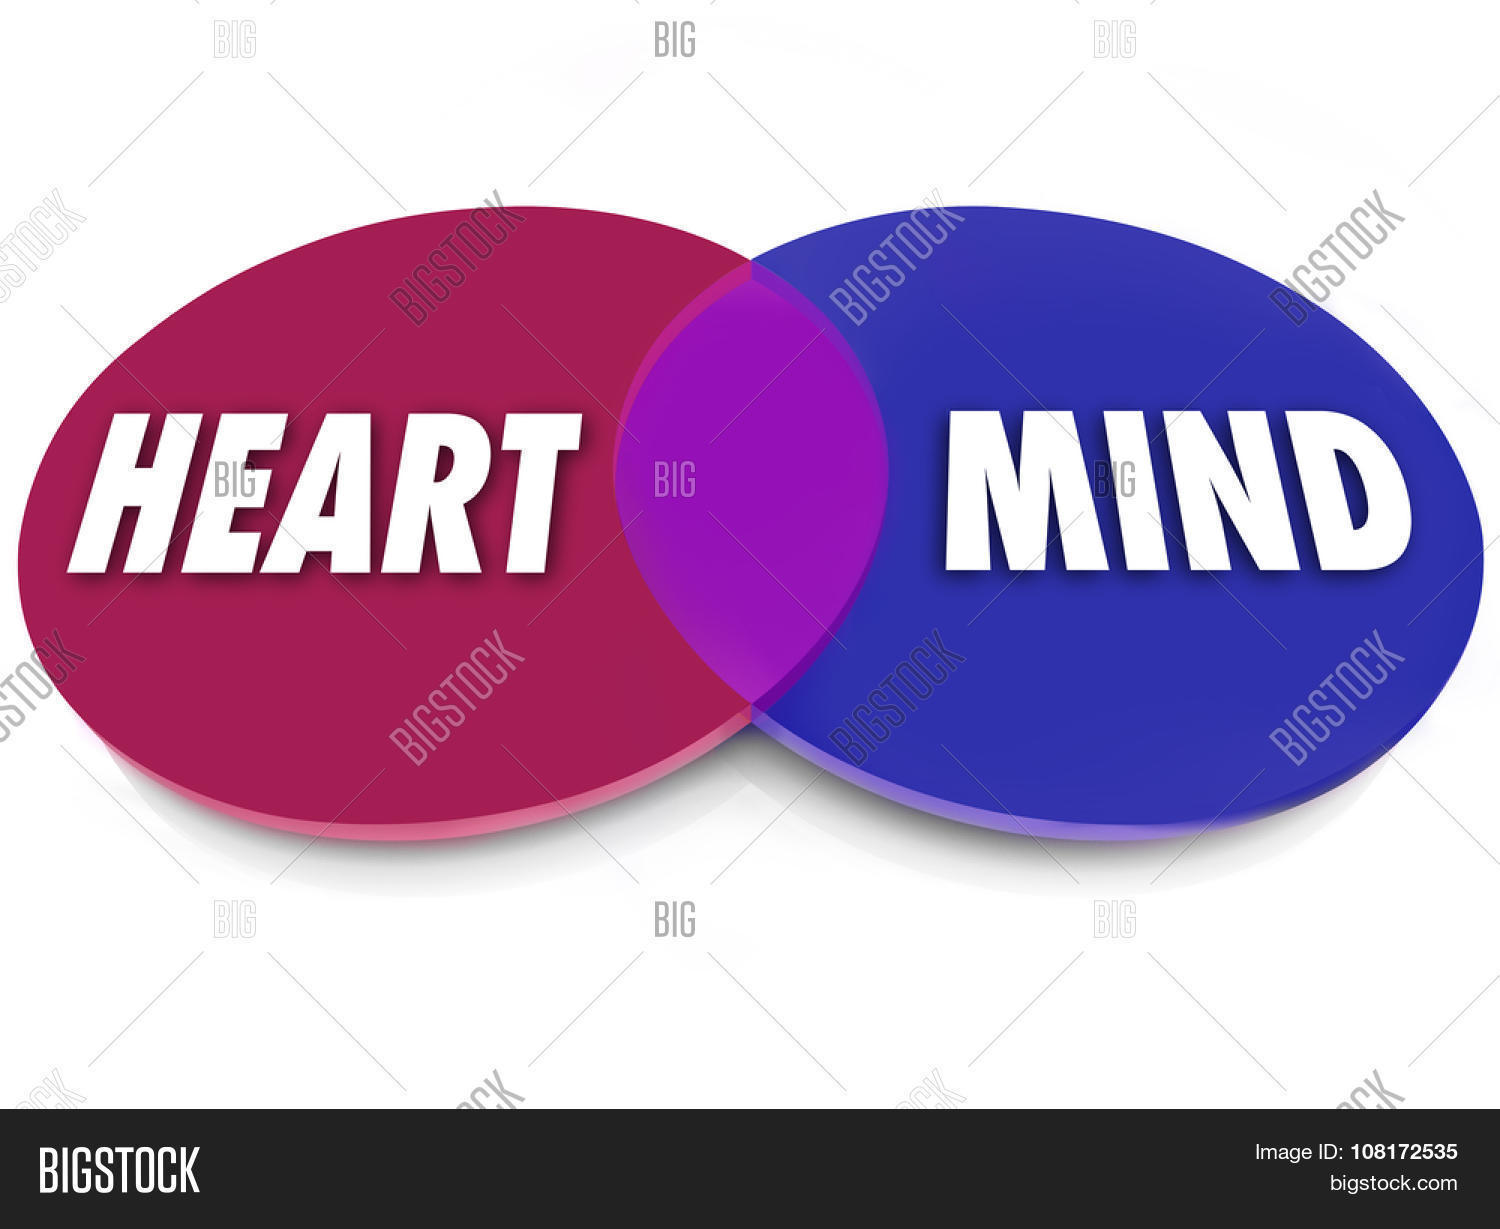 needs and wants venn diagram 1976 corvette stingray wiring heart mind words on image photo free trial bigstock circles to illustrate desires that balance the